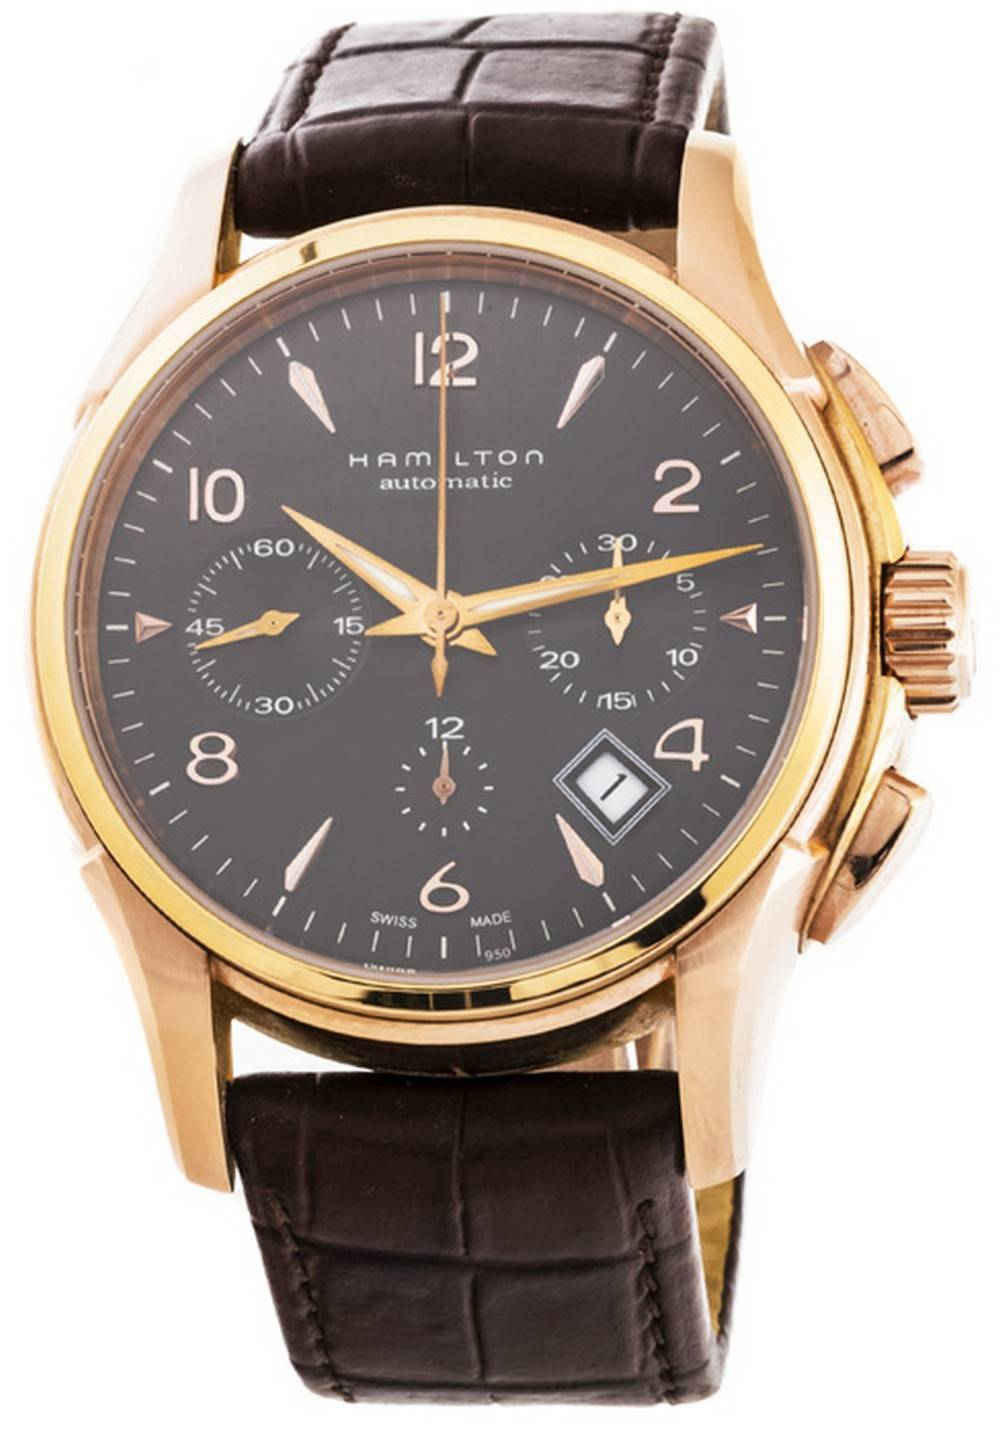 Which Hamilton mechanical watch do you think is the best? Part – I